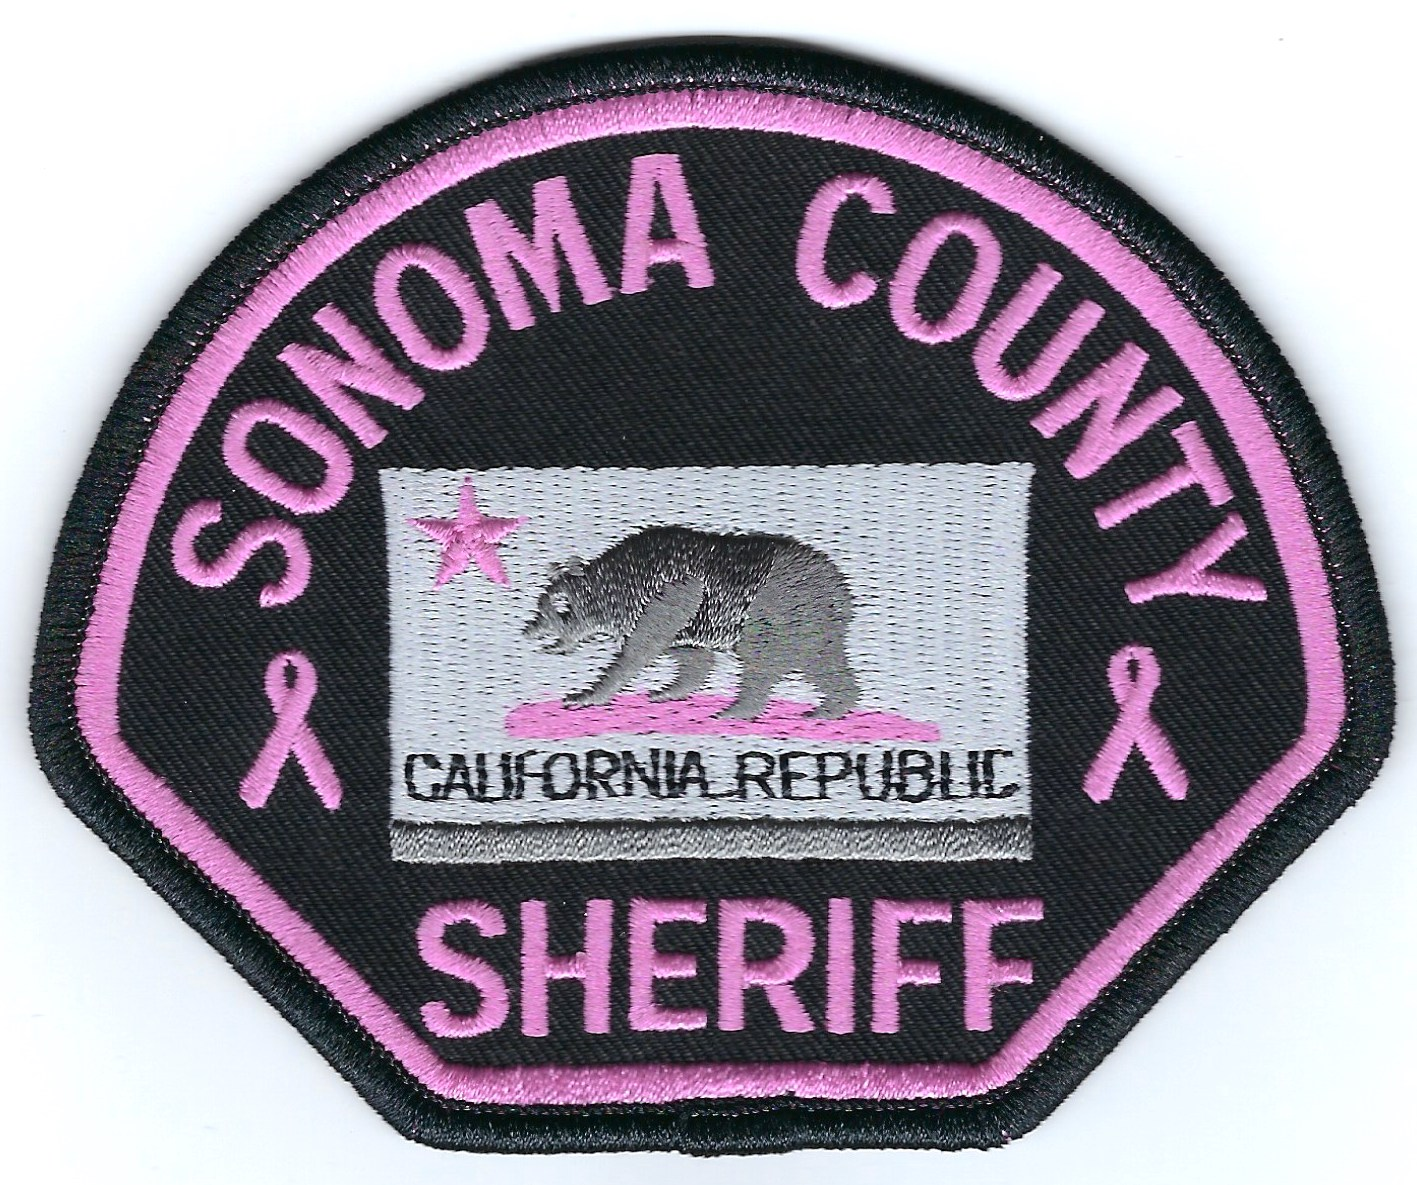 Sonoma County Sheriff - Pink Sample.jpg